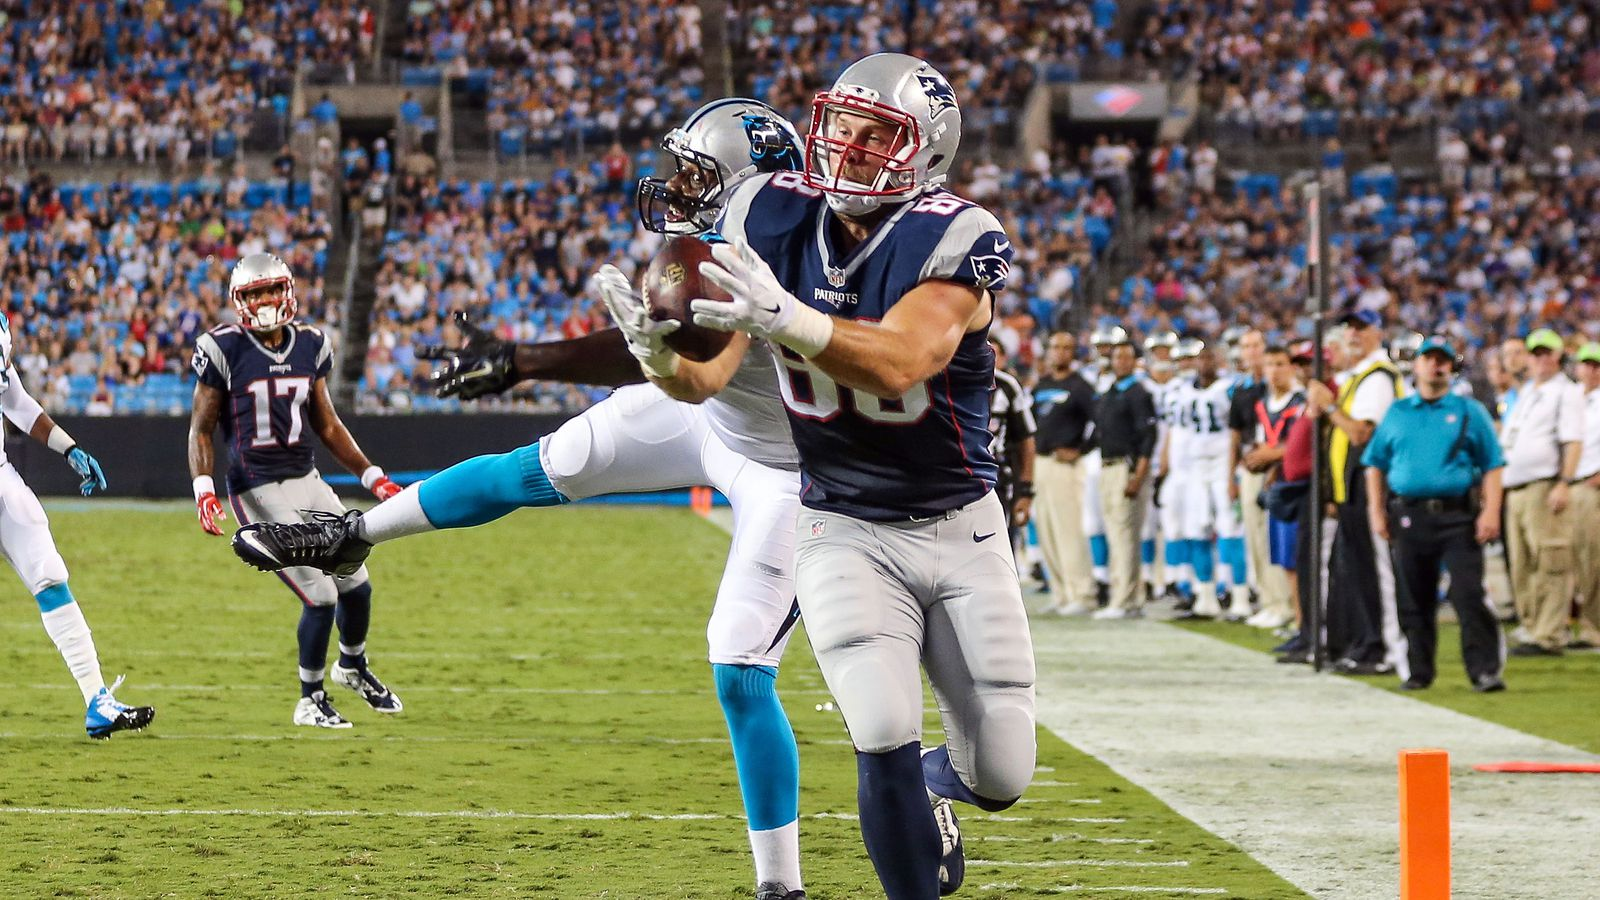 carolina panthers vs patriots score bovada/